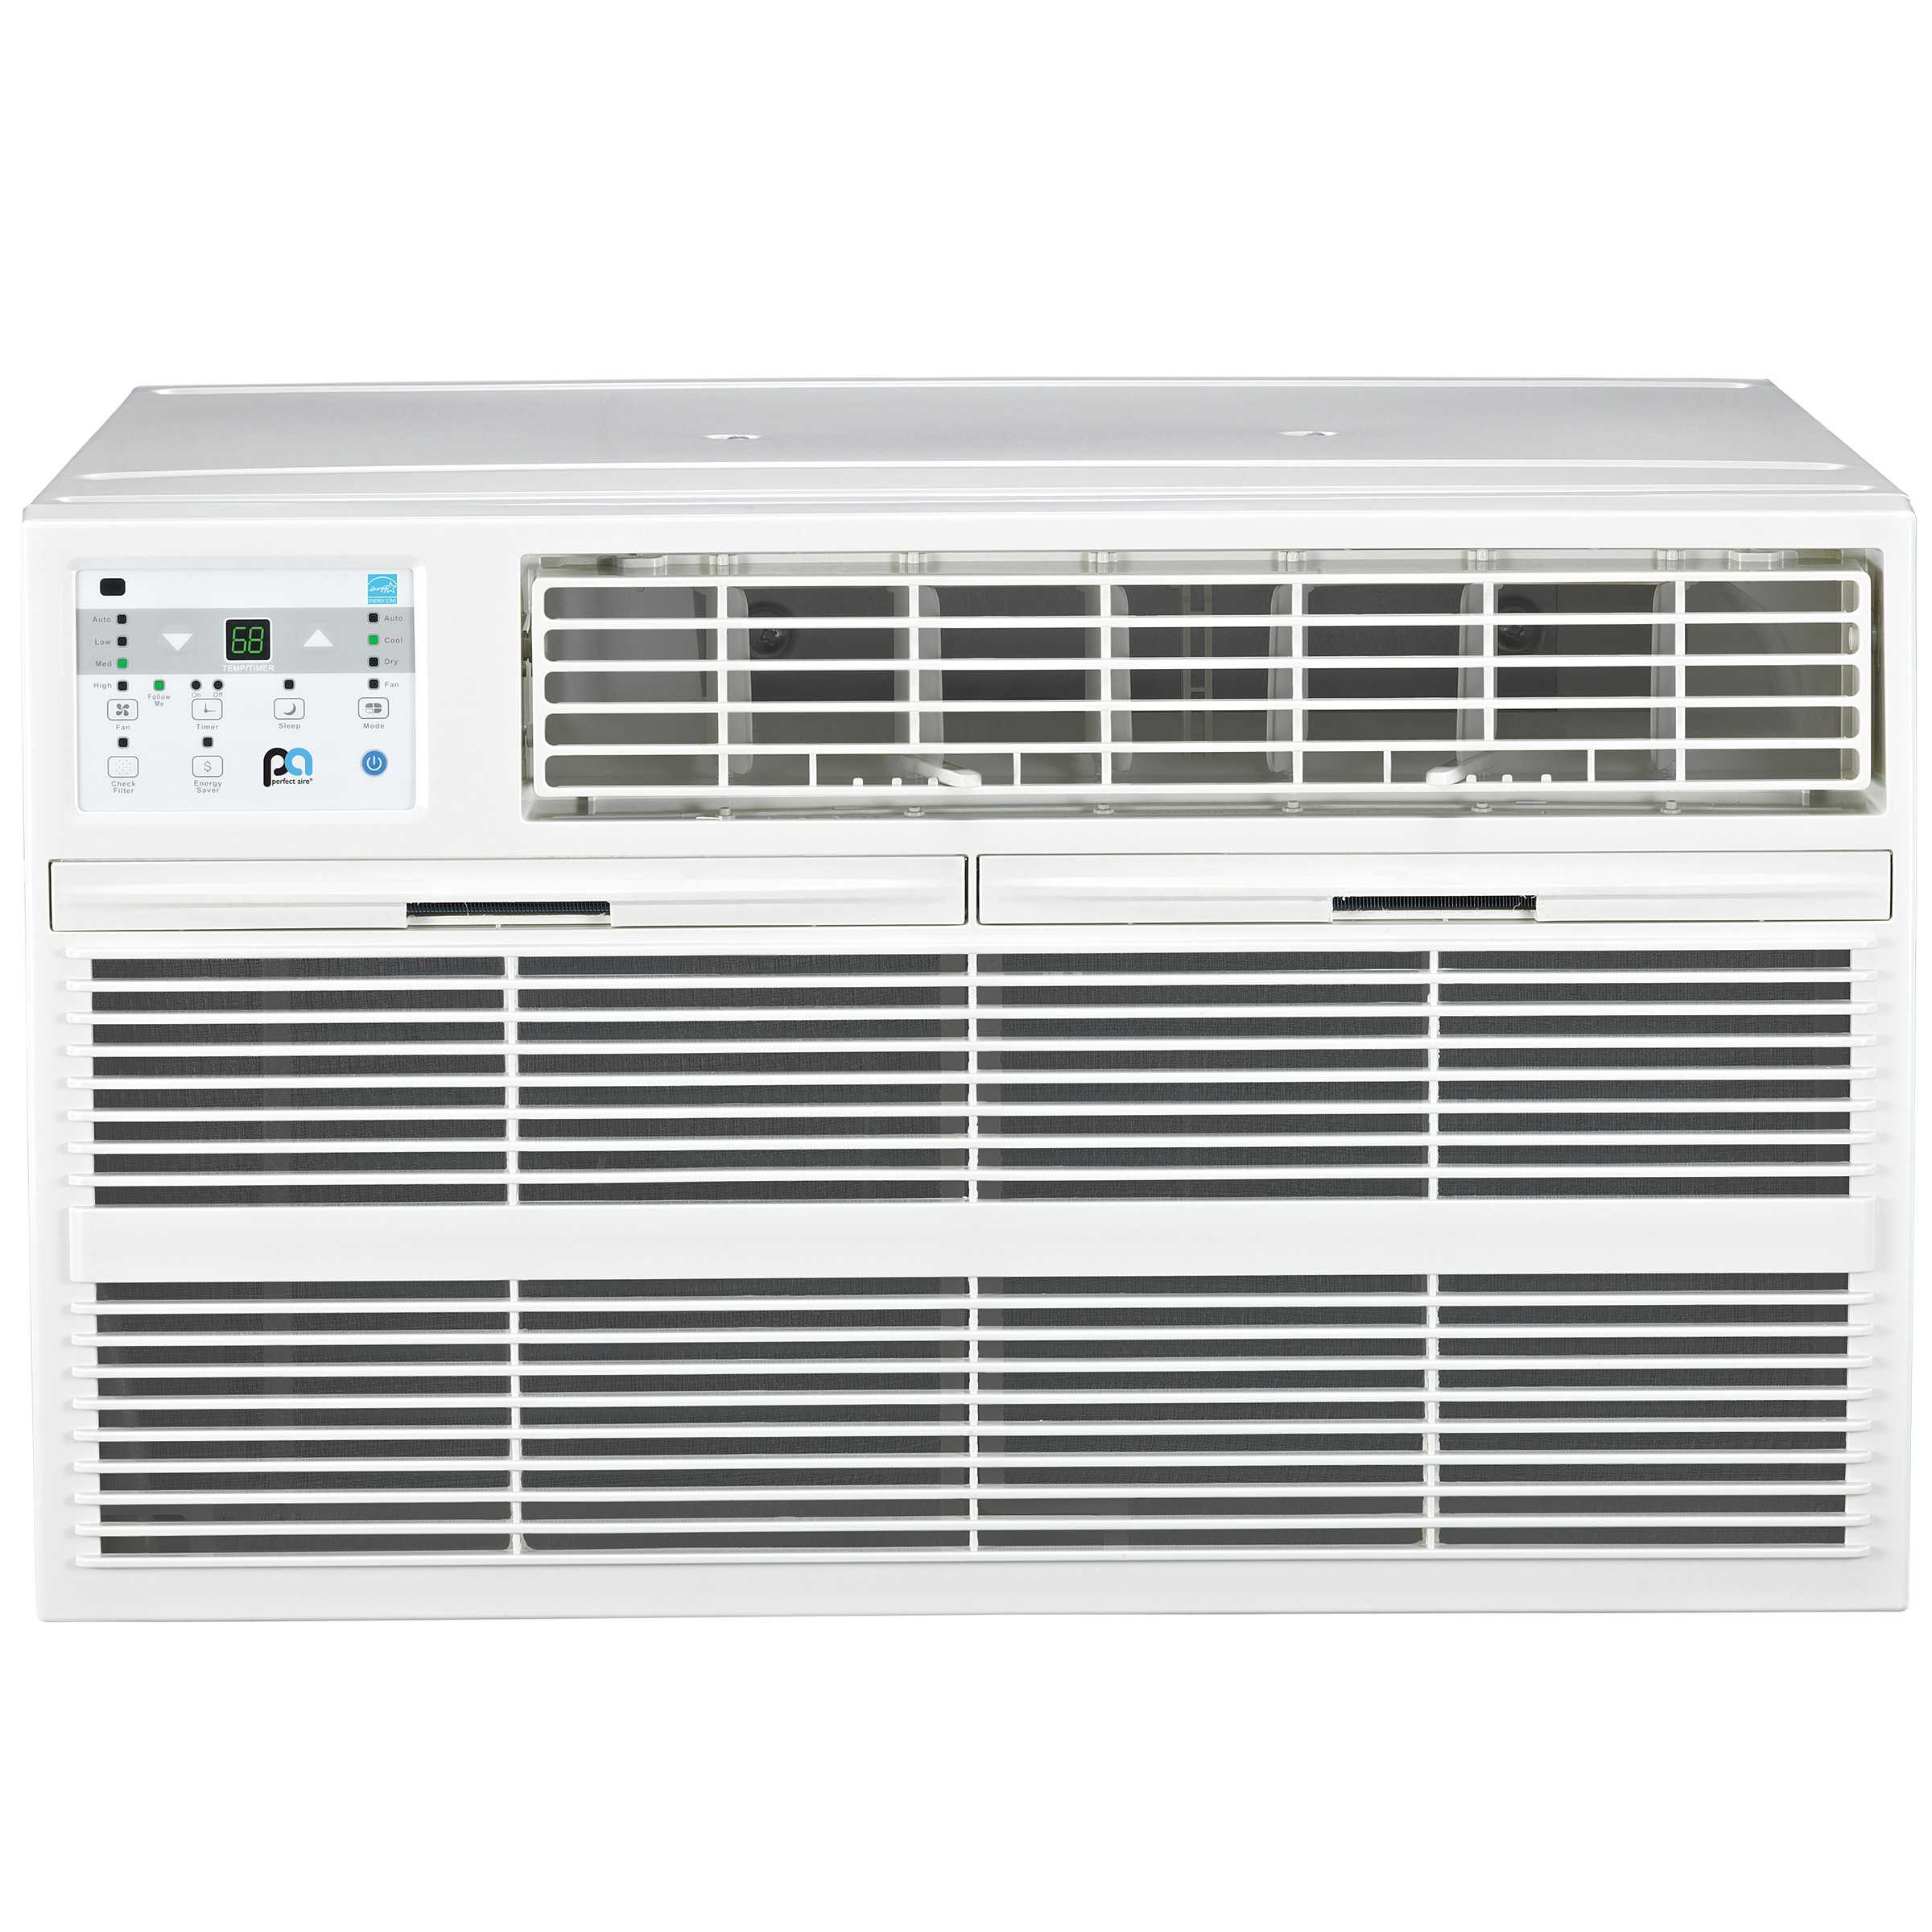 Perfect Aire 4PATW12002 Thru-the-Wall AC 12,000 BTU